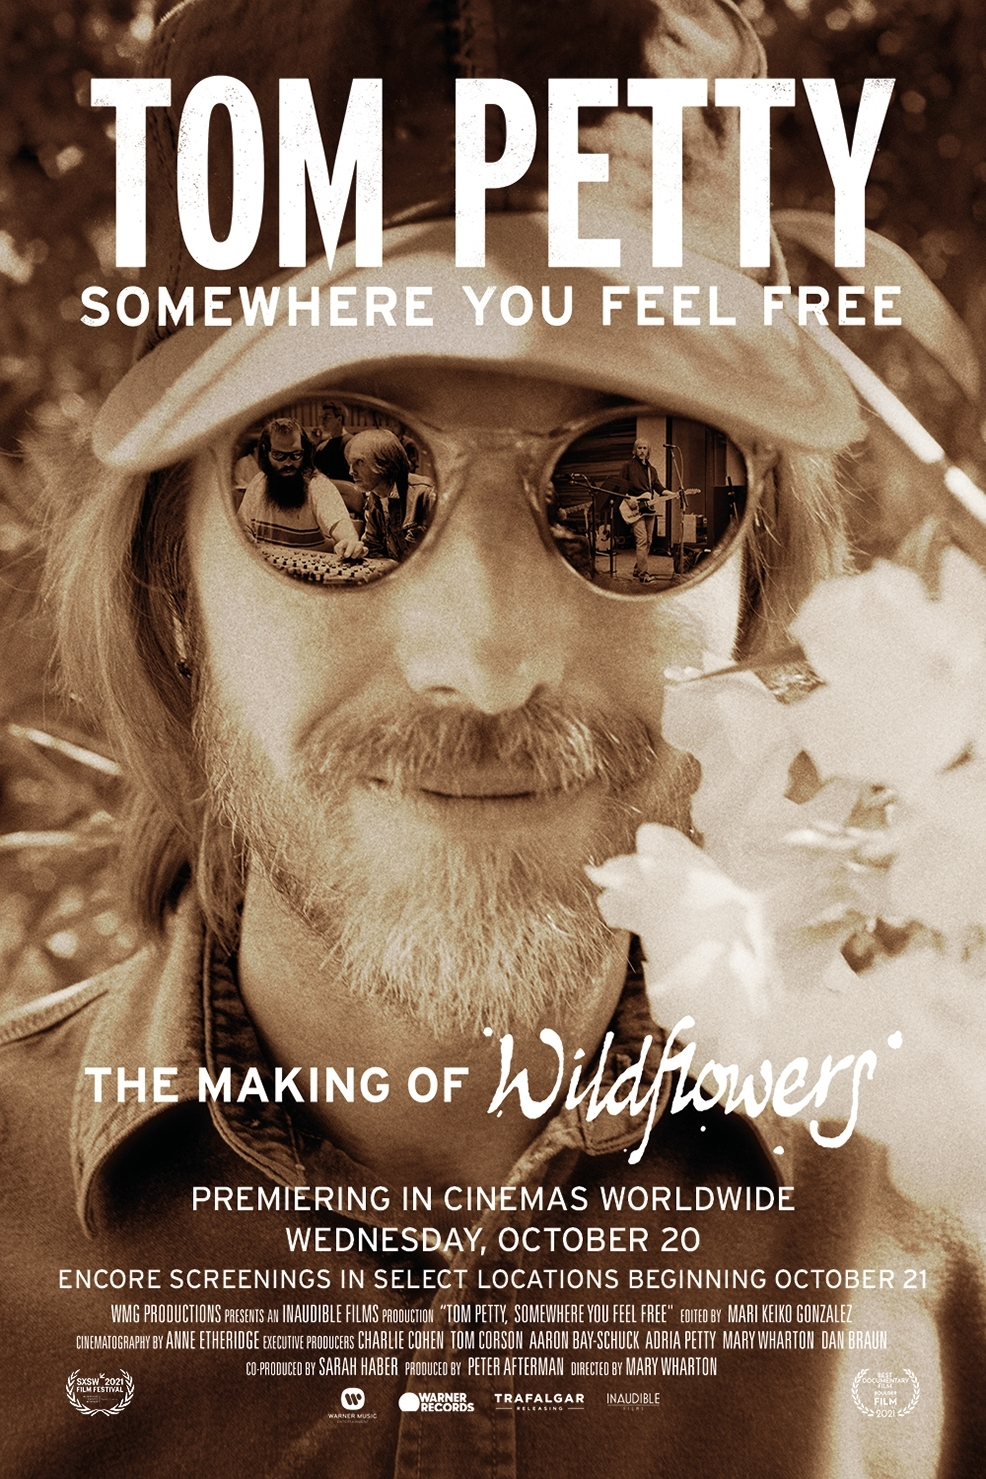 Tom Petty, Somewhere You Feel Free: The Making of